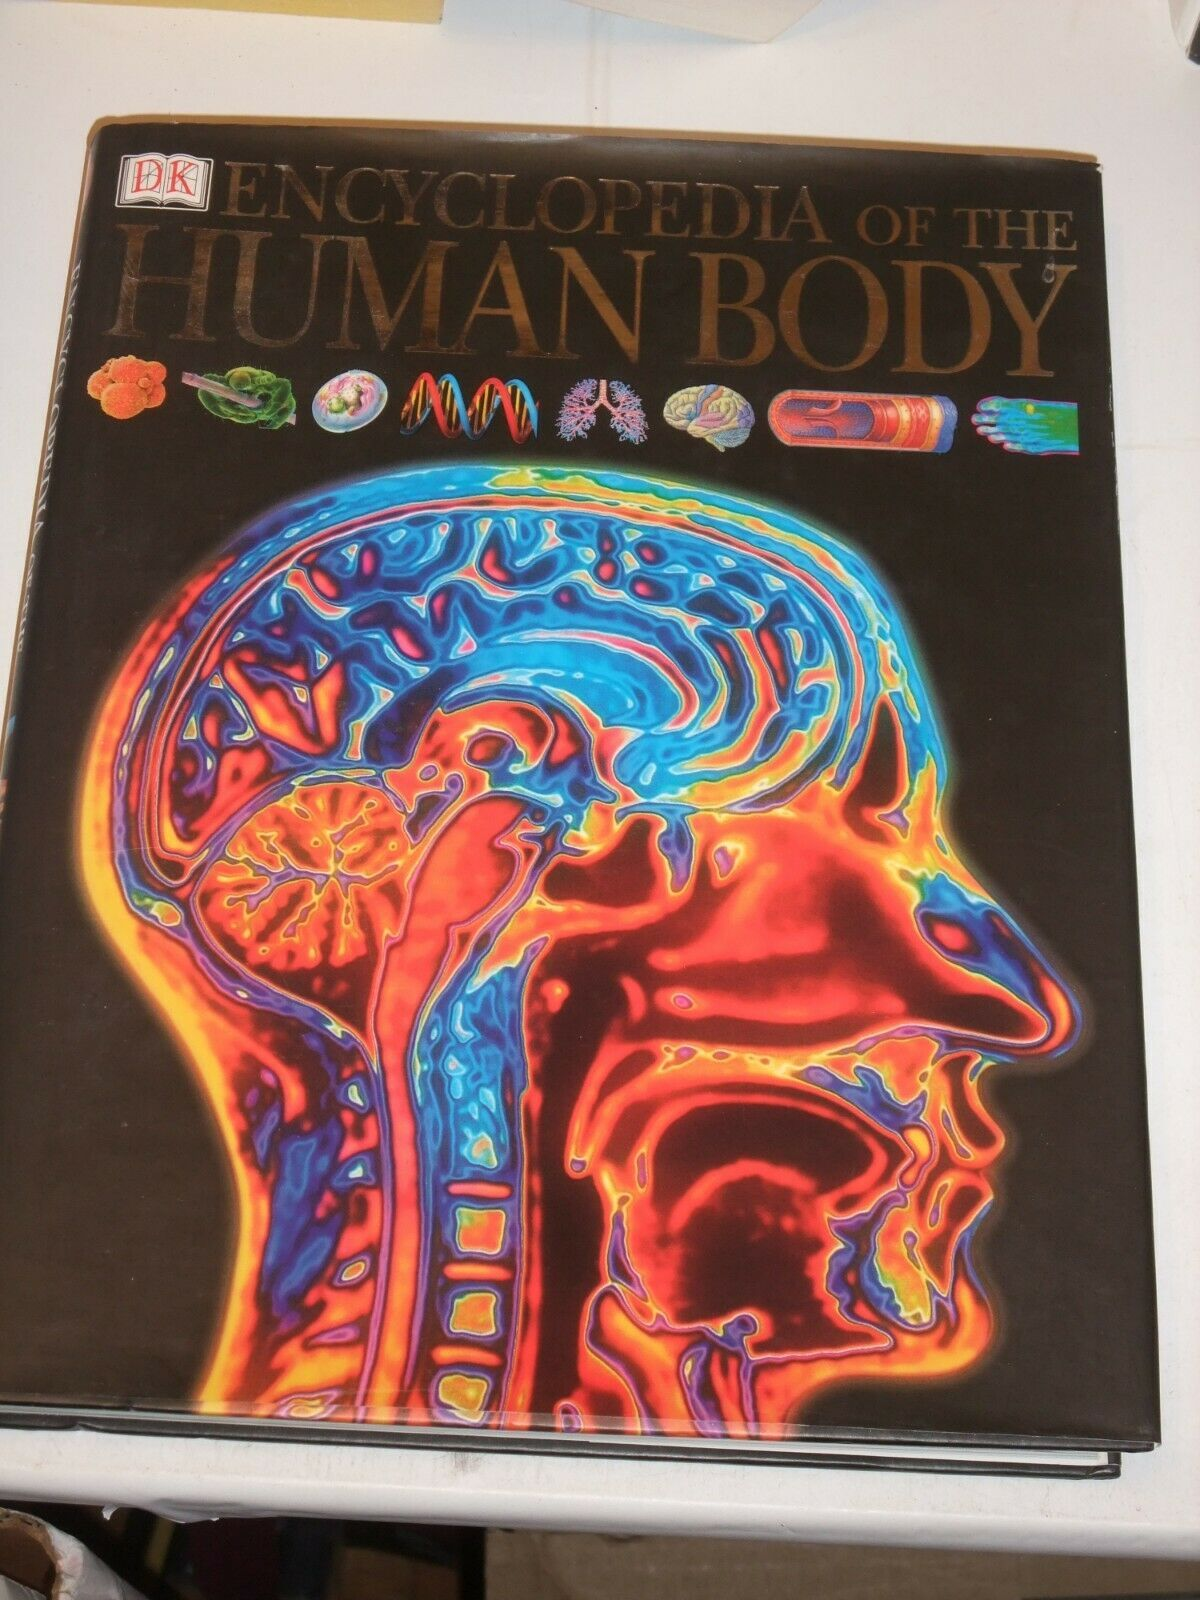 Primary image for Encyclopedia of the Human Body, 2002 Hardcover, Richard Walker - DK Publishing